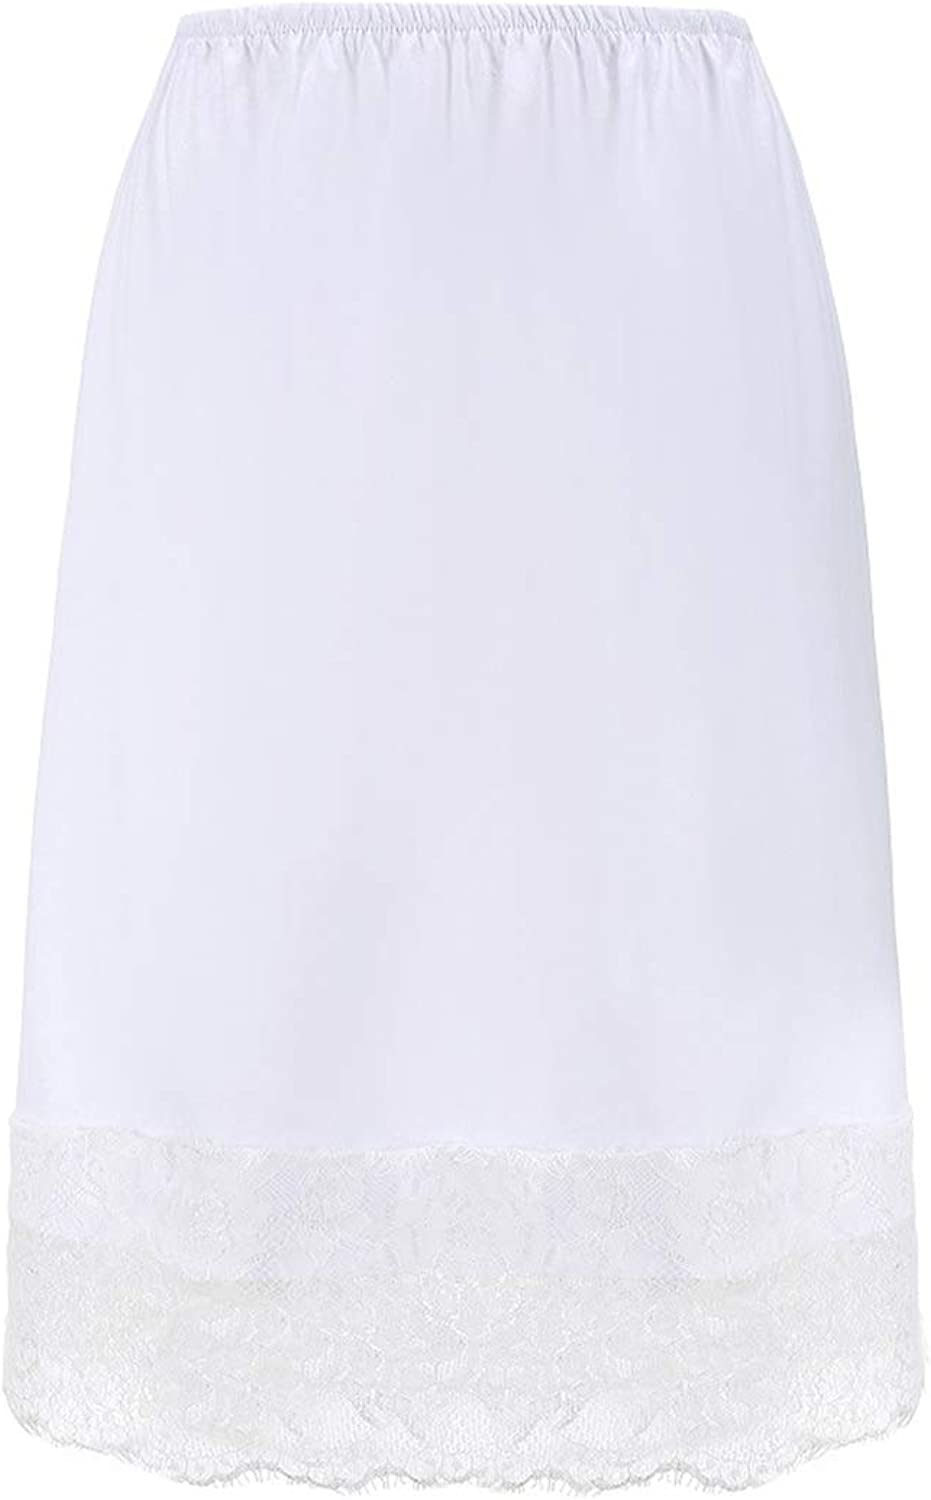 Women Lace Skirts Solid Casual Mesh Tulle Skirt Cotton Short Pencil Elastic Skirt